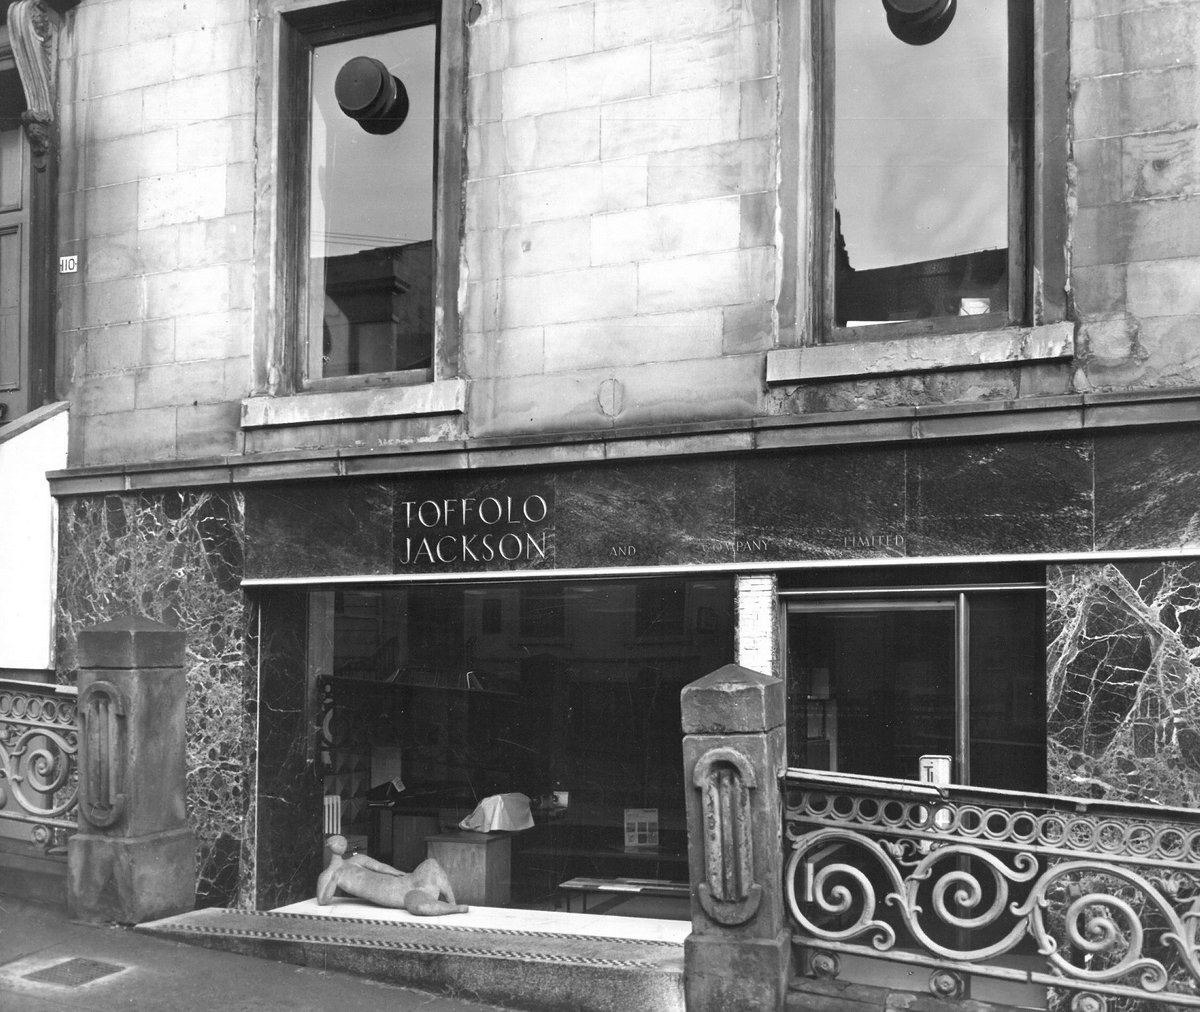 Glasgow City Archives On Twitter Toffolo Jackson Co Ltd